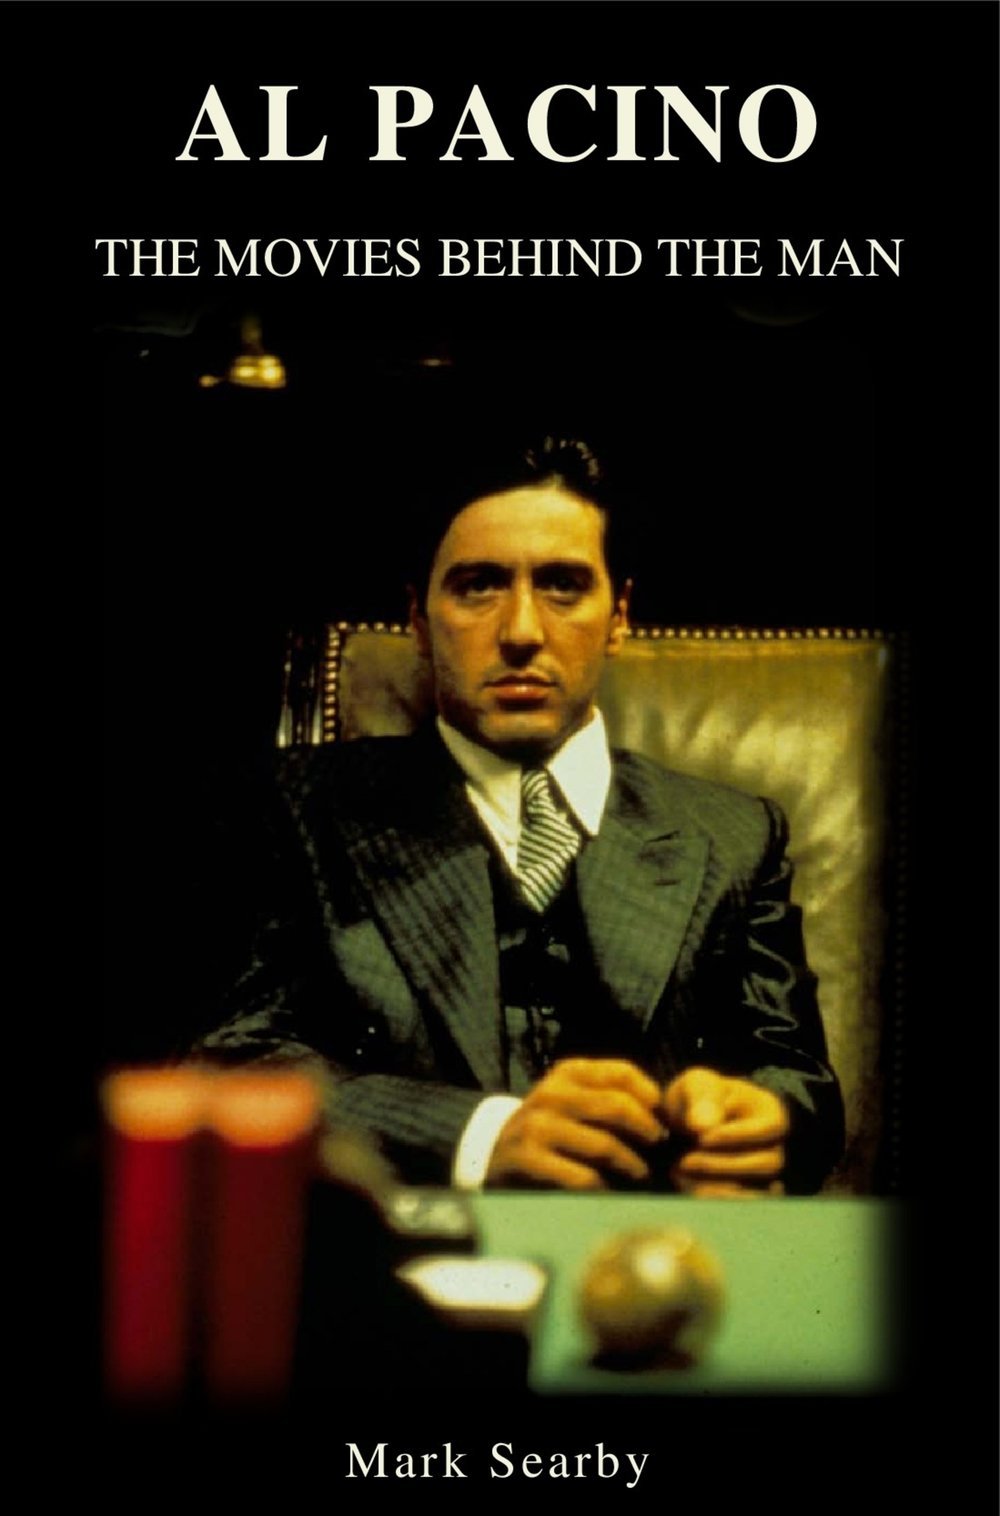 - Al Pacino: The Movies Behind The Man is the ultimate insider's guide to the filmography of the legendary Hollywood actor.Consistently recognised as one of the greatest actors of all time, Al Pacino has a huge legacy within film and an equally impressive archive of awards to his name. Unlike many other books that hold a sole character in their title, whether you're a fan of his repertoire or not, Al Pacino: The Movies Behind The Man gives a remarkable and often unexplored insight into film and one of it's key actors, making this an accessible and inspiring read.Giving an in-depth look at the films made by this icon throughout his career, Al Pacino: The Movies Behind The Man explores his legacy from his breakout performance in The Panic in Needle Park through to the early highs of the 1970s and 80s with The Godfather Parts I and II, Serpico, Dog Day Afternoon and Scarface. Each chapter of this book guides the reader through the inception, pre-production and filming of Al Pacino's entire film catalogue, delving in to previously unearthed critique and opinions of those that worked so closely with him.Readers can explore the reviews and the box office returns and digest a critical analysis on every film Pacino has ever worked on. His big box office hits such as Heat, The Devil's Advocate and Donnie Brasco through to the smaller, independent and personal productions including The Local Stigmatic, Looking For Richard and Chinese Coffee make for an inspirited variation of accounts and insight into the workings of such a highly regarded character.Featuring over fifty exclusive interviews from actors, directors, producers and writers, interviews include the likes of Stephen Bauer (Scarface), Jerry Schatzberg (The Panic in Needle Park), Israel Horovitz (Author! Author!), Hugh Hudson (Revolution), Bruce Altman (Glengarry Glen Ross), Lowell Bergman (The Insider), Jay Mohr (S1m0ne), Cary Brokaw (Angels in America), Kris Marshall (The Merchant of Venice), Lawrence Grobel (Salome and Wilde Salome) and many more.Giving a unique insight and depth to the workings behind a film icon, Mark Searby presents, AL PACINO: THE MOVIES BEHIND THE MAN Available to purchase now. Click for Amazon UK, Amazon US, Barnes & Noble, Kobo, Smashword, iBooks and other e-book retailers.Paperback edition available here